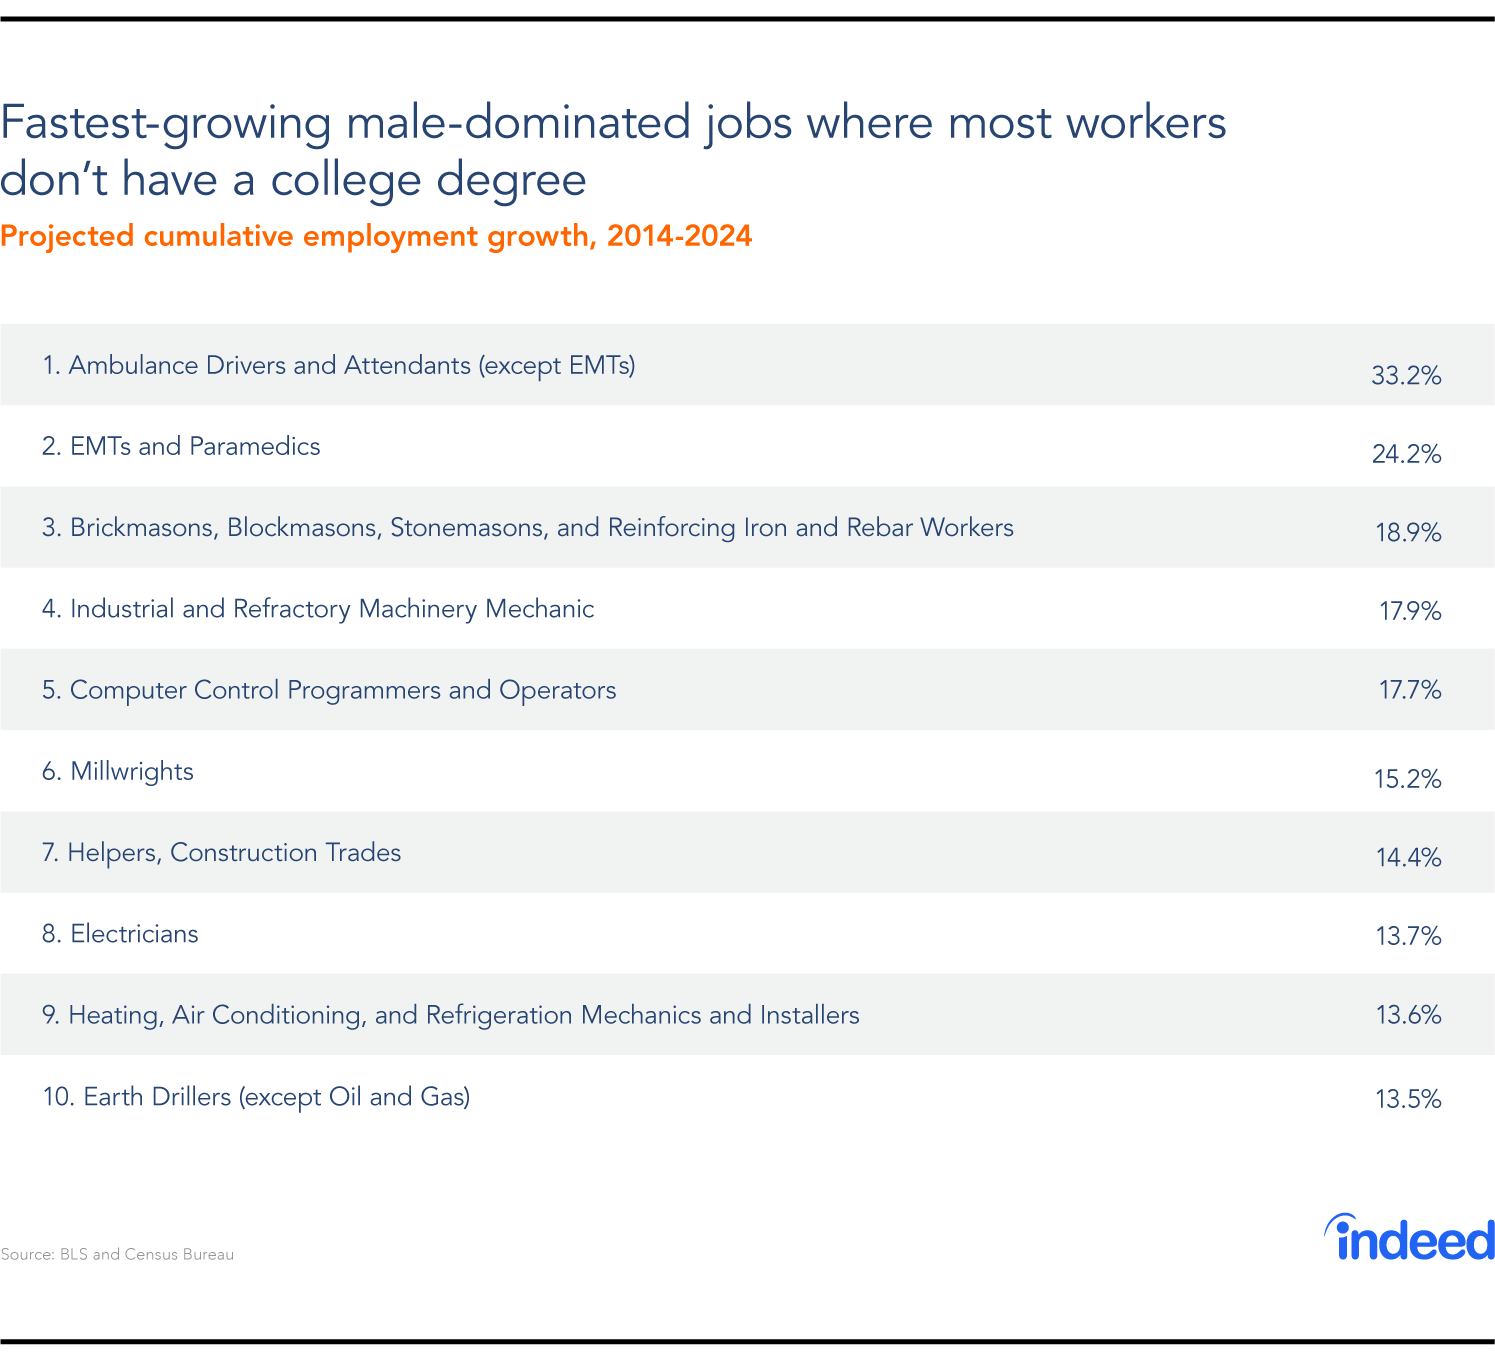 fastest growing jobs where most workers don't have a college degree